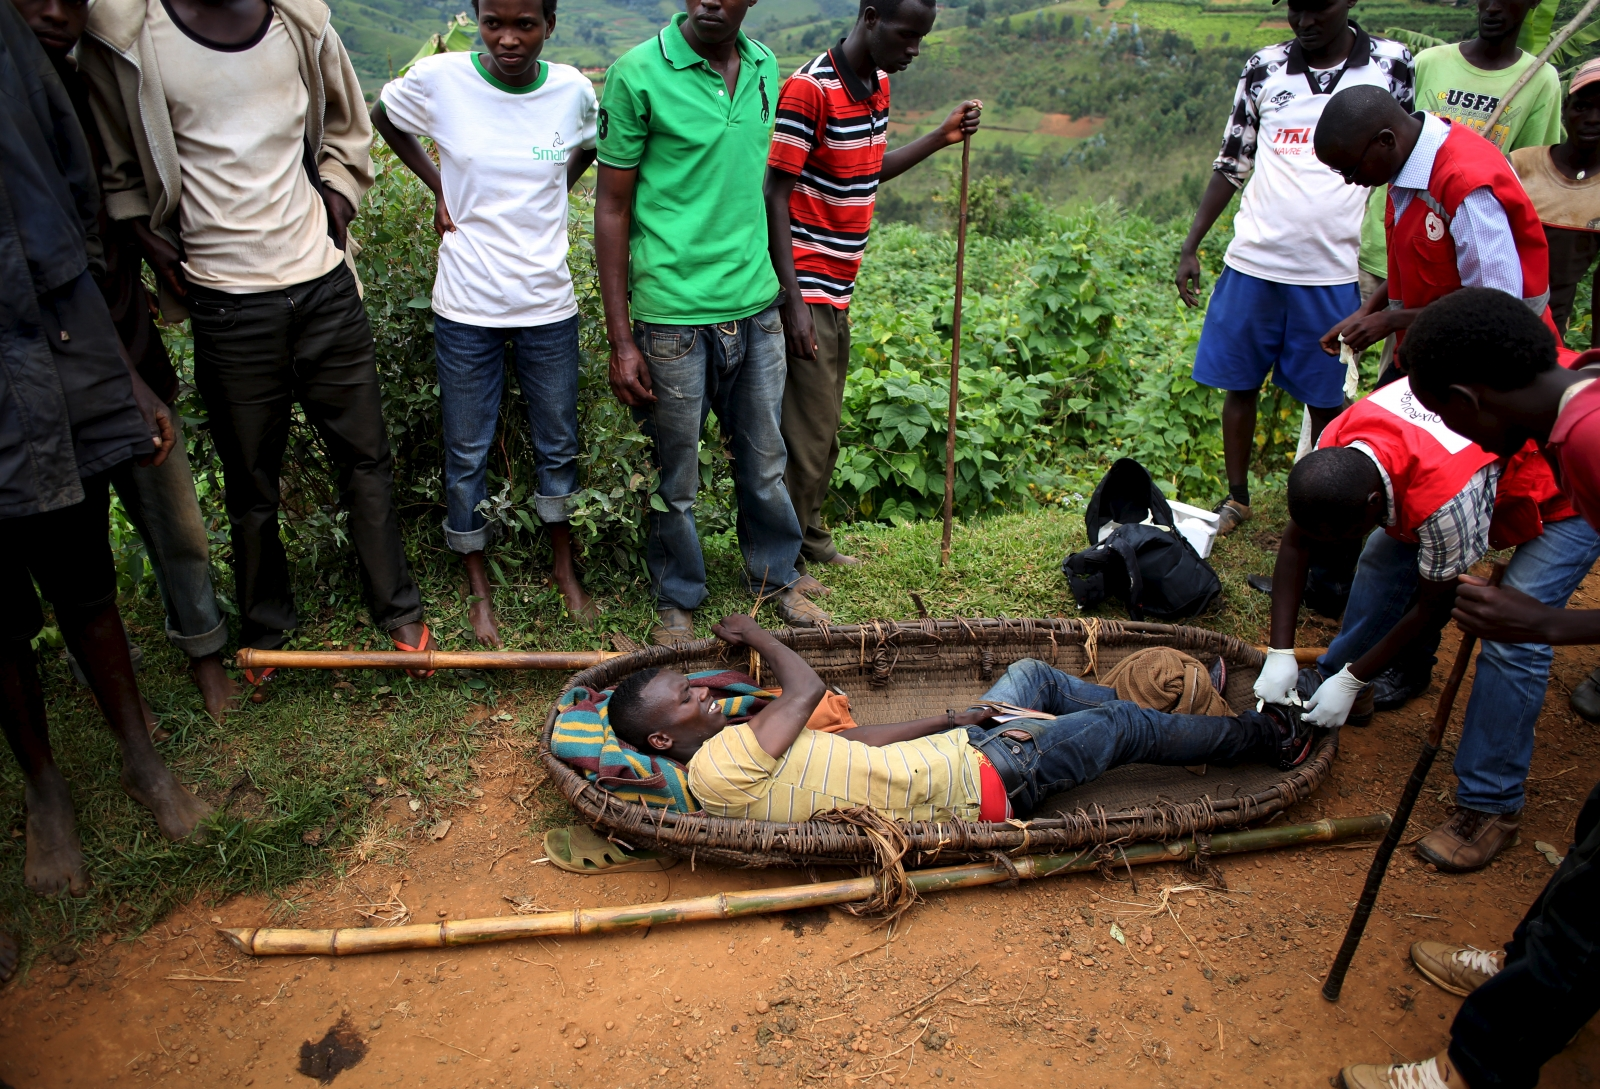 Police beating protester Burundi